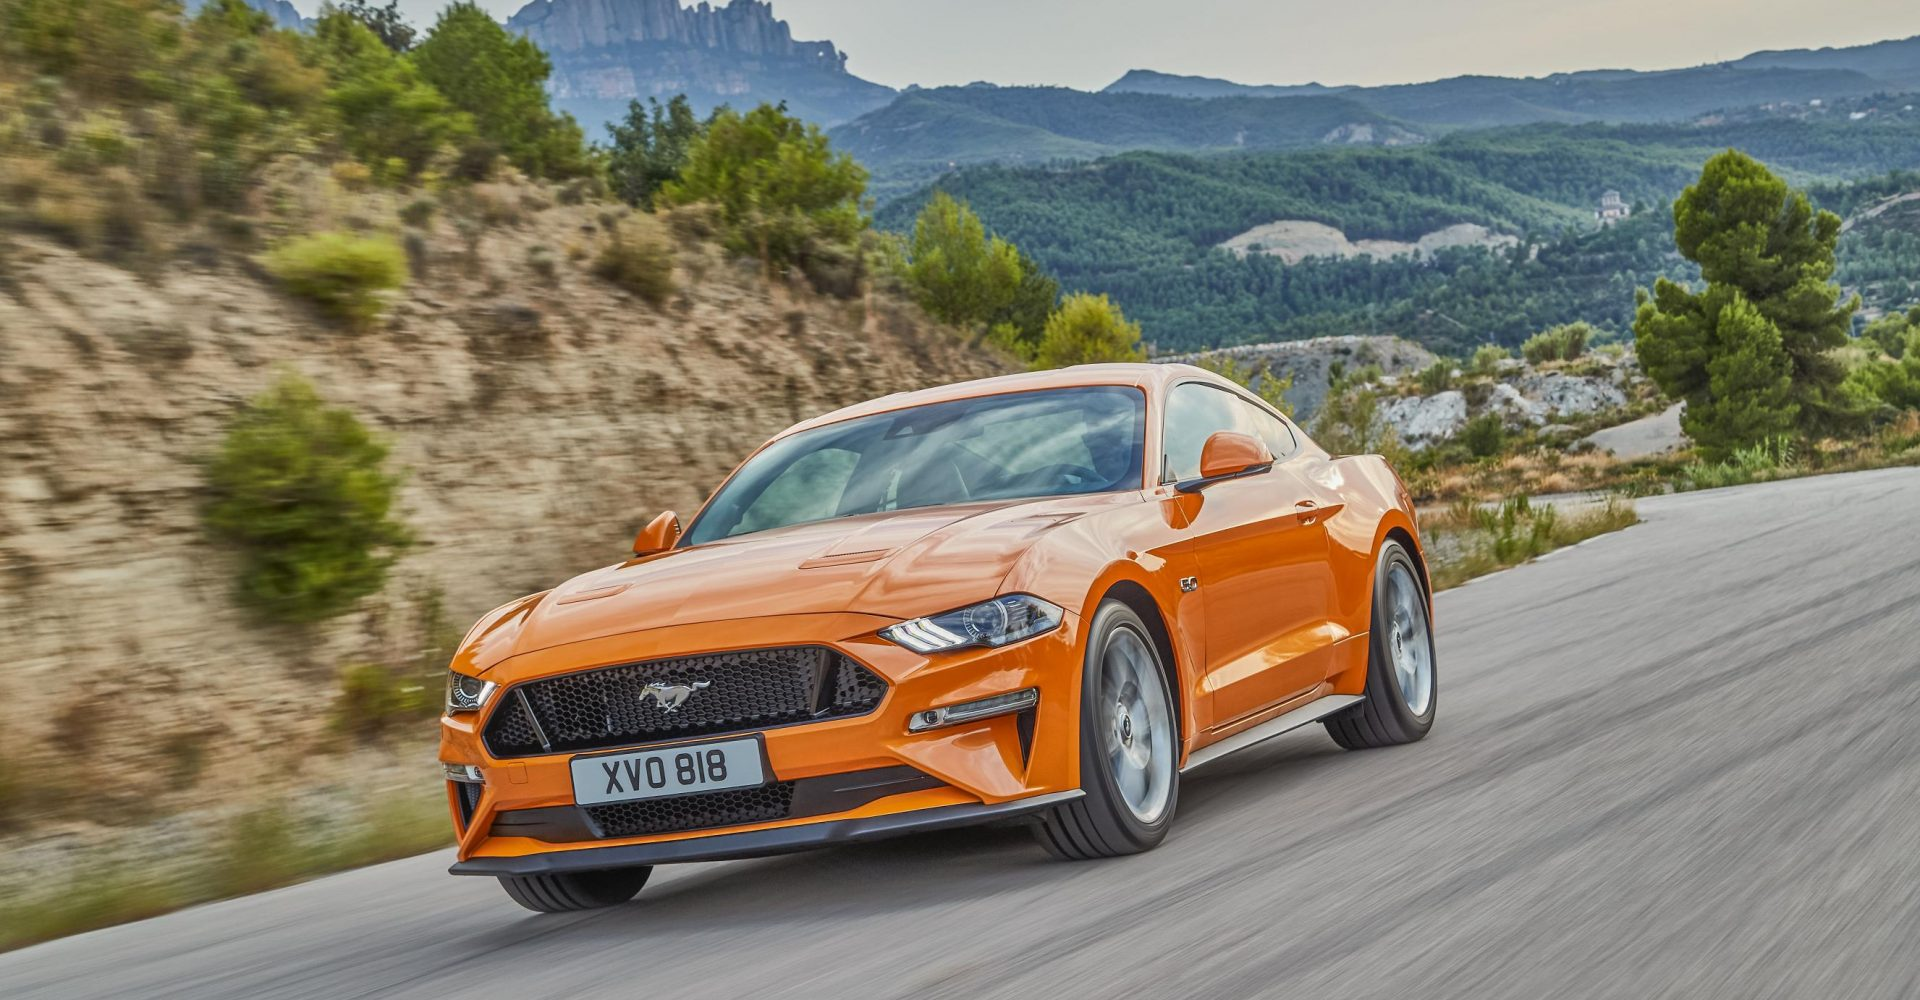 7 things you need to know about Ford's new Mustang